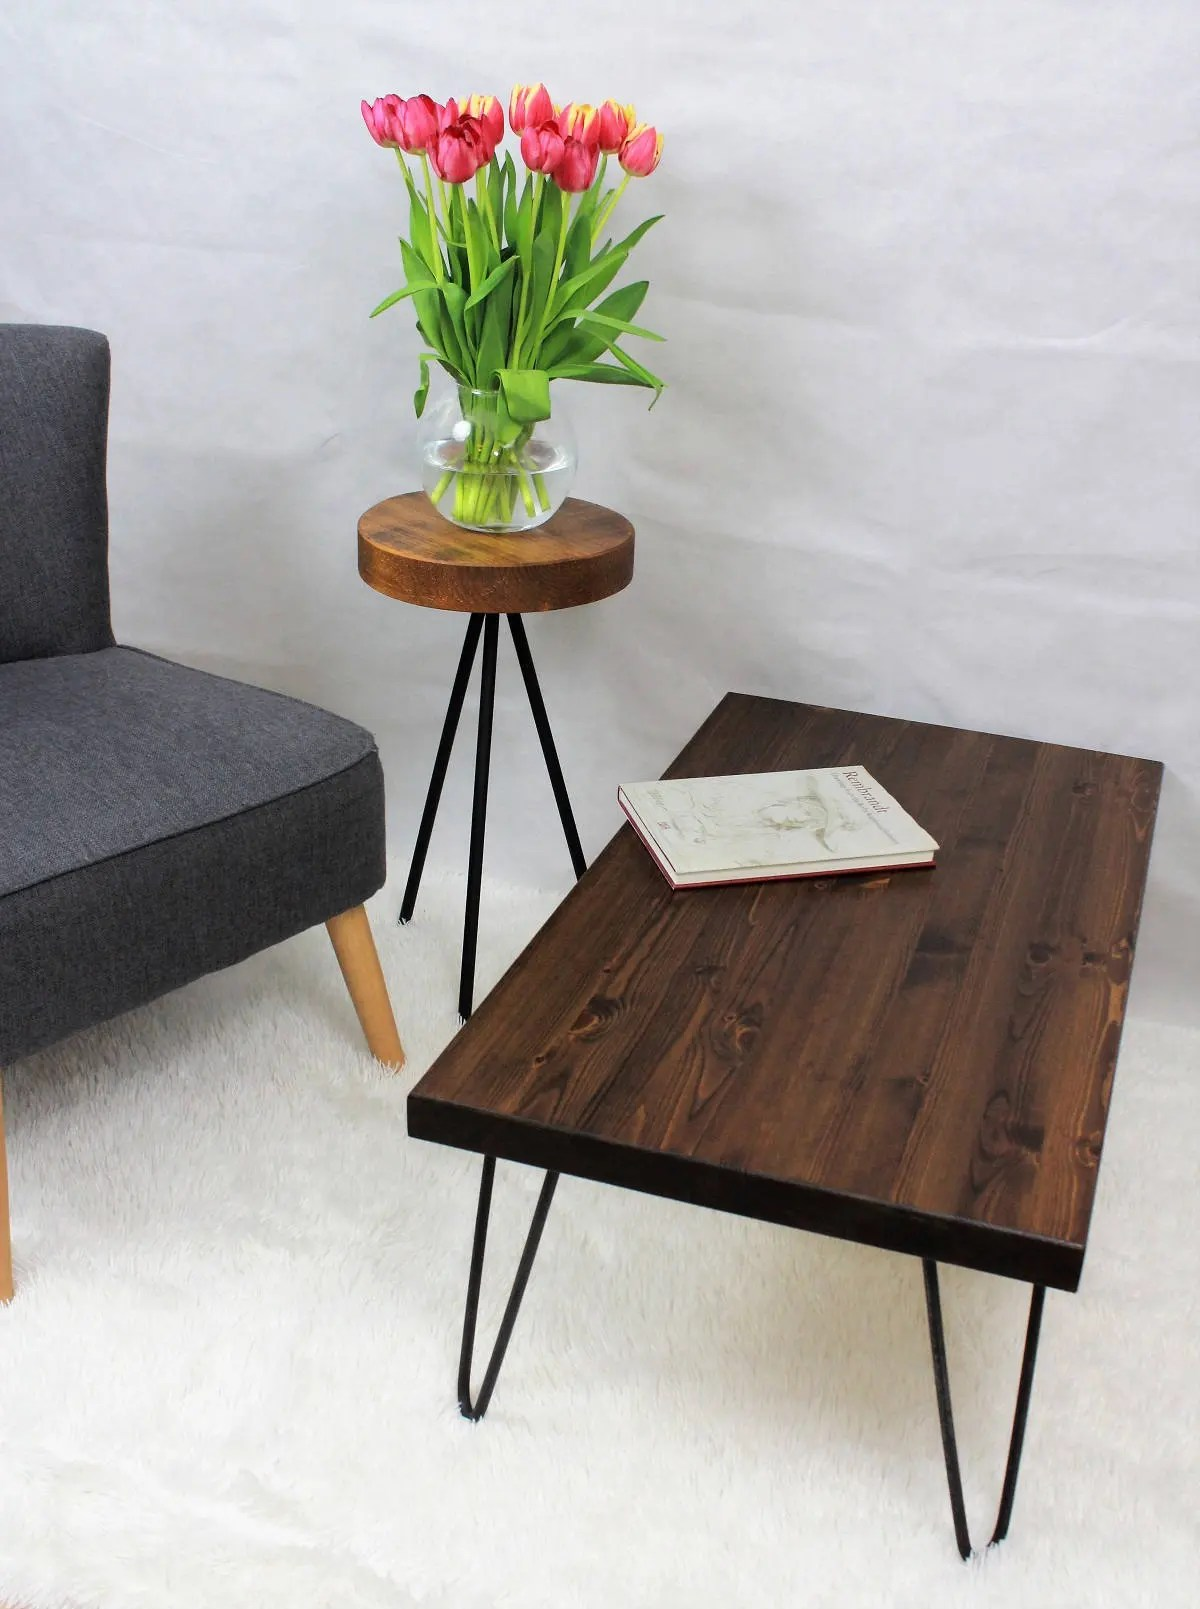 The Wood Times Couchtisch Rustic Vintage Industrial Wooden Coffee Table With Metal Hairpin Legs